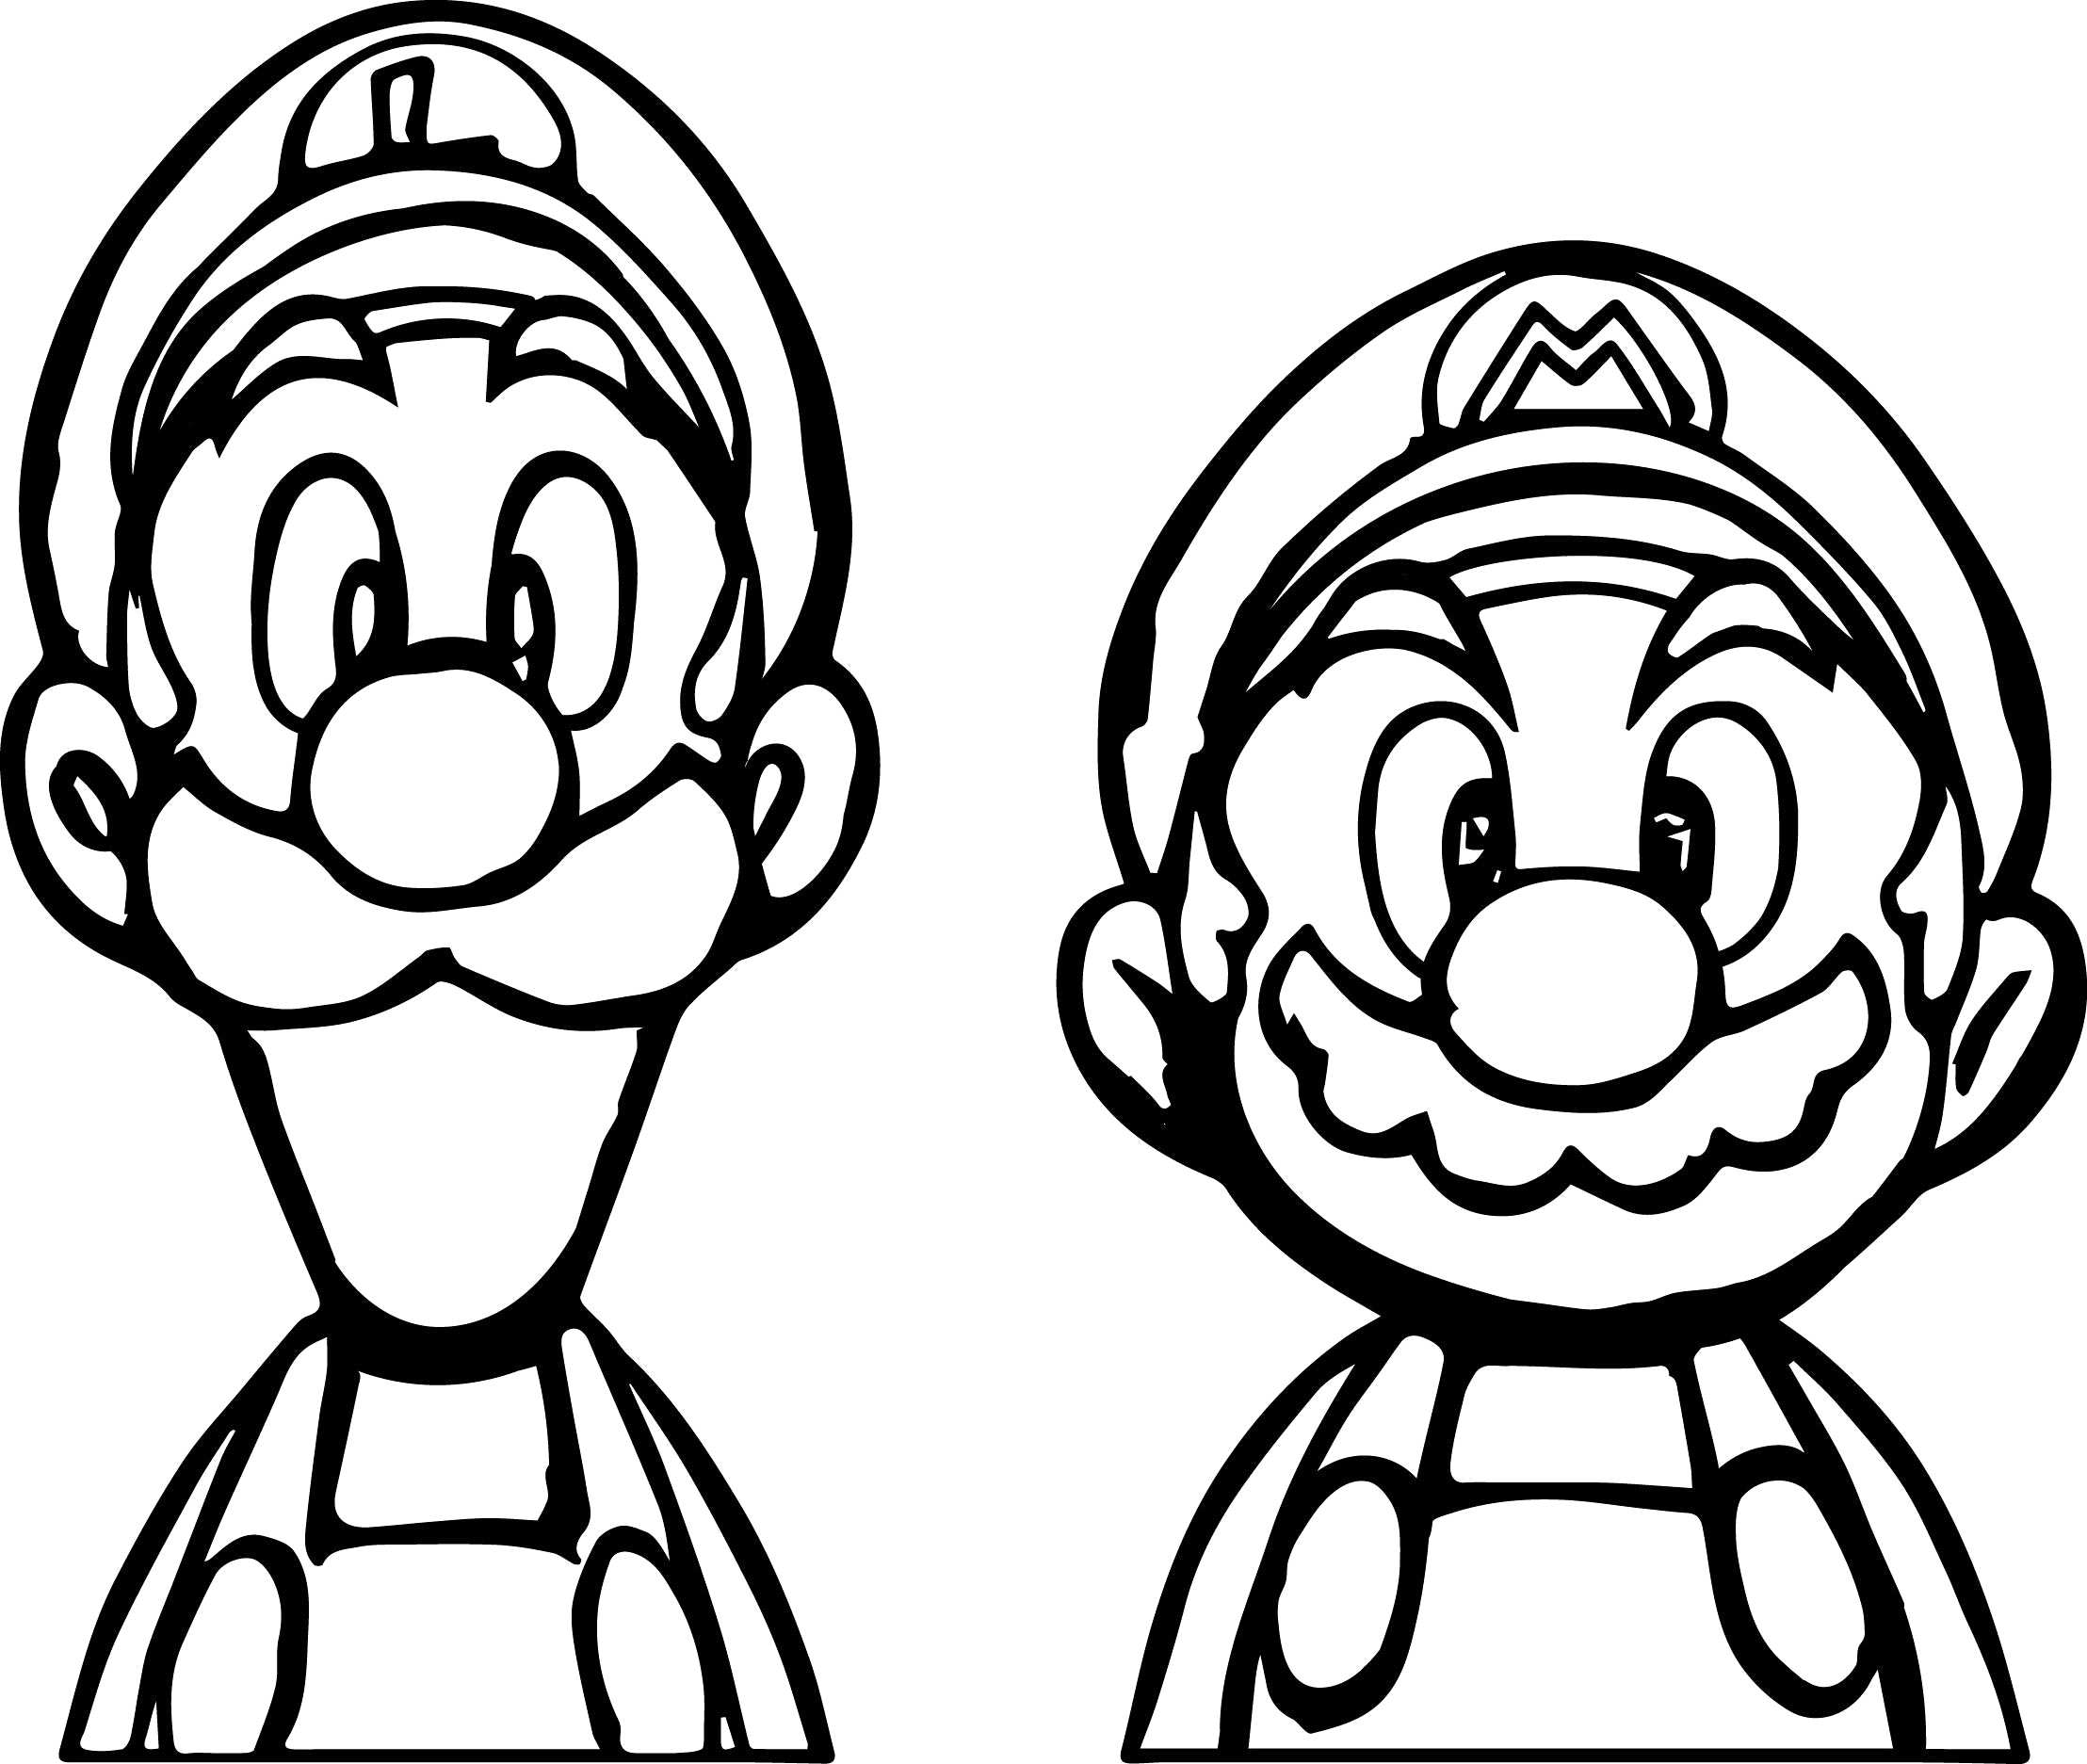 mario bros printable coloring pages super mario bros coloring pages printable coloring bros mario pages